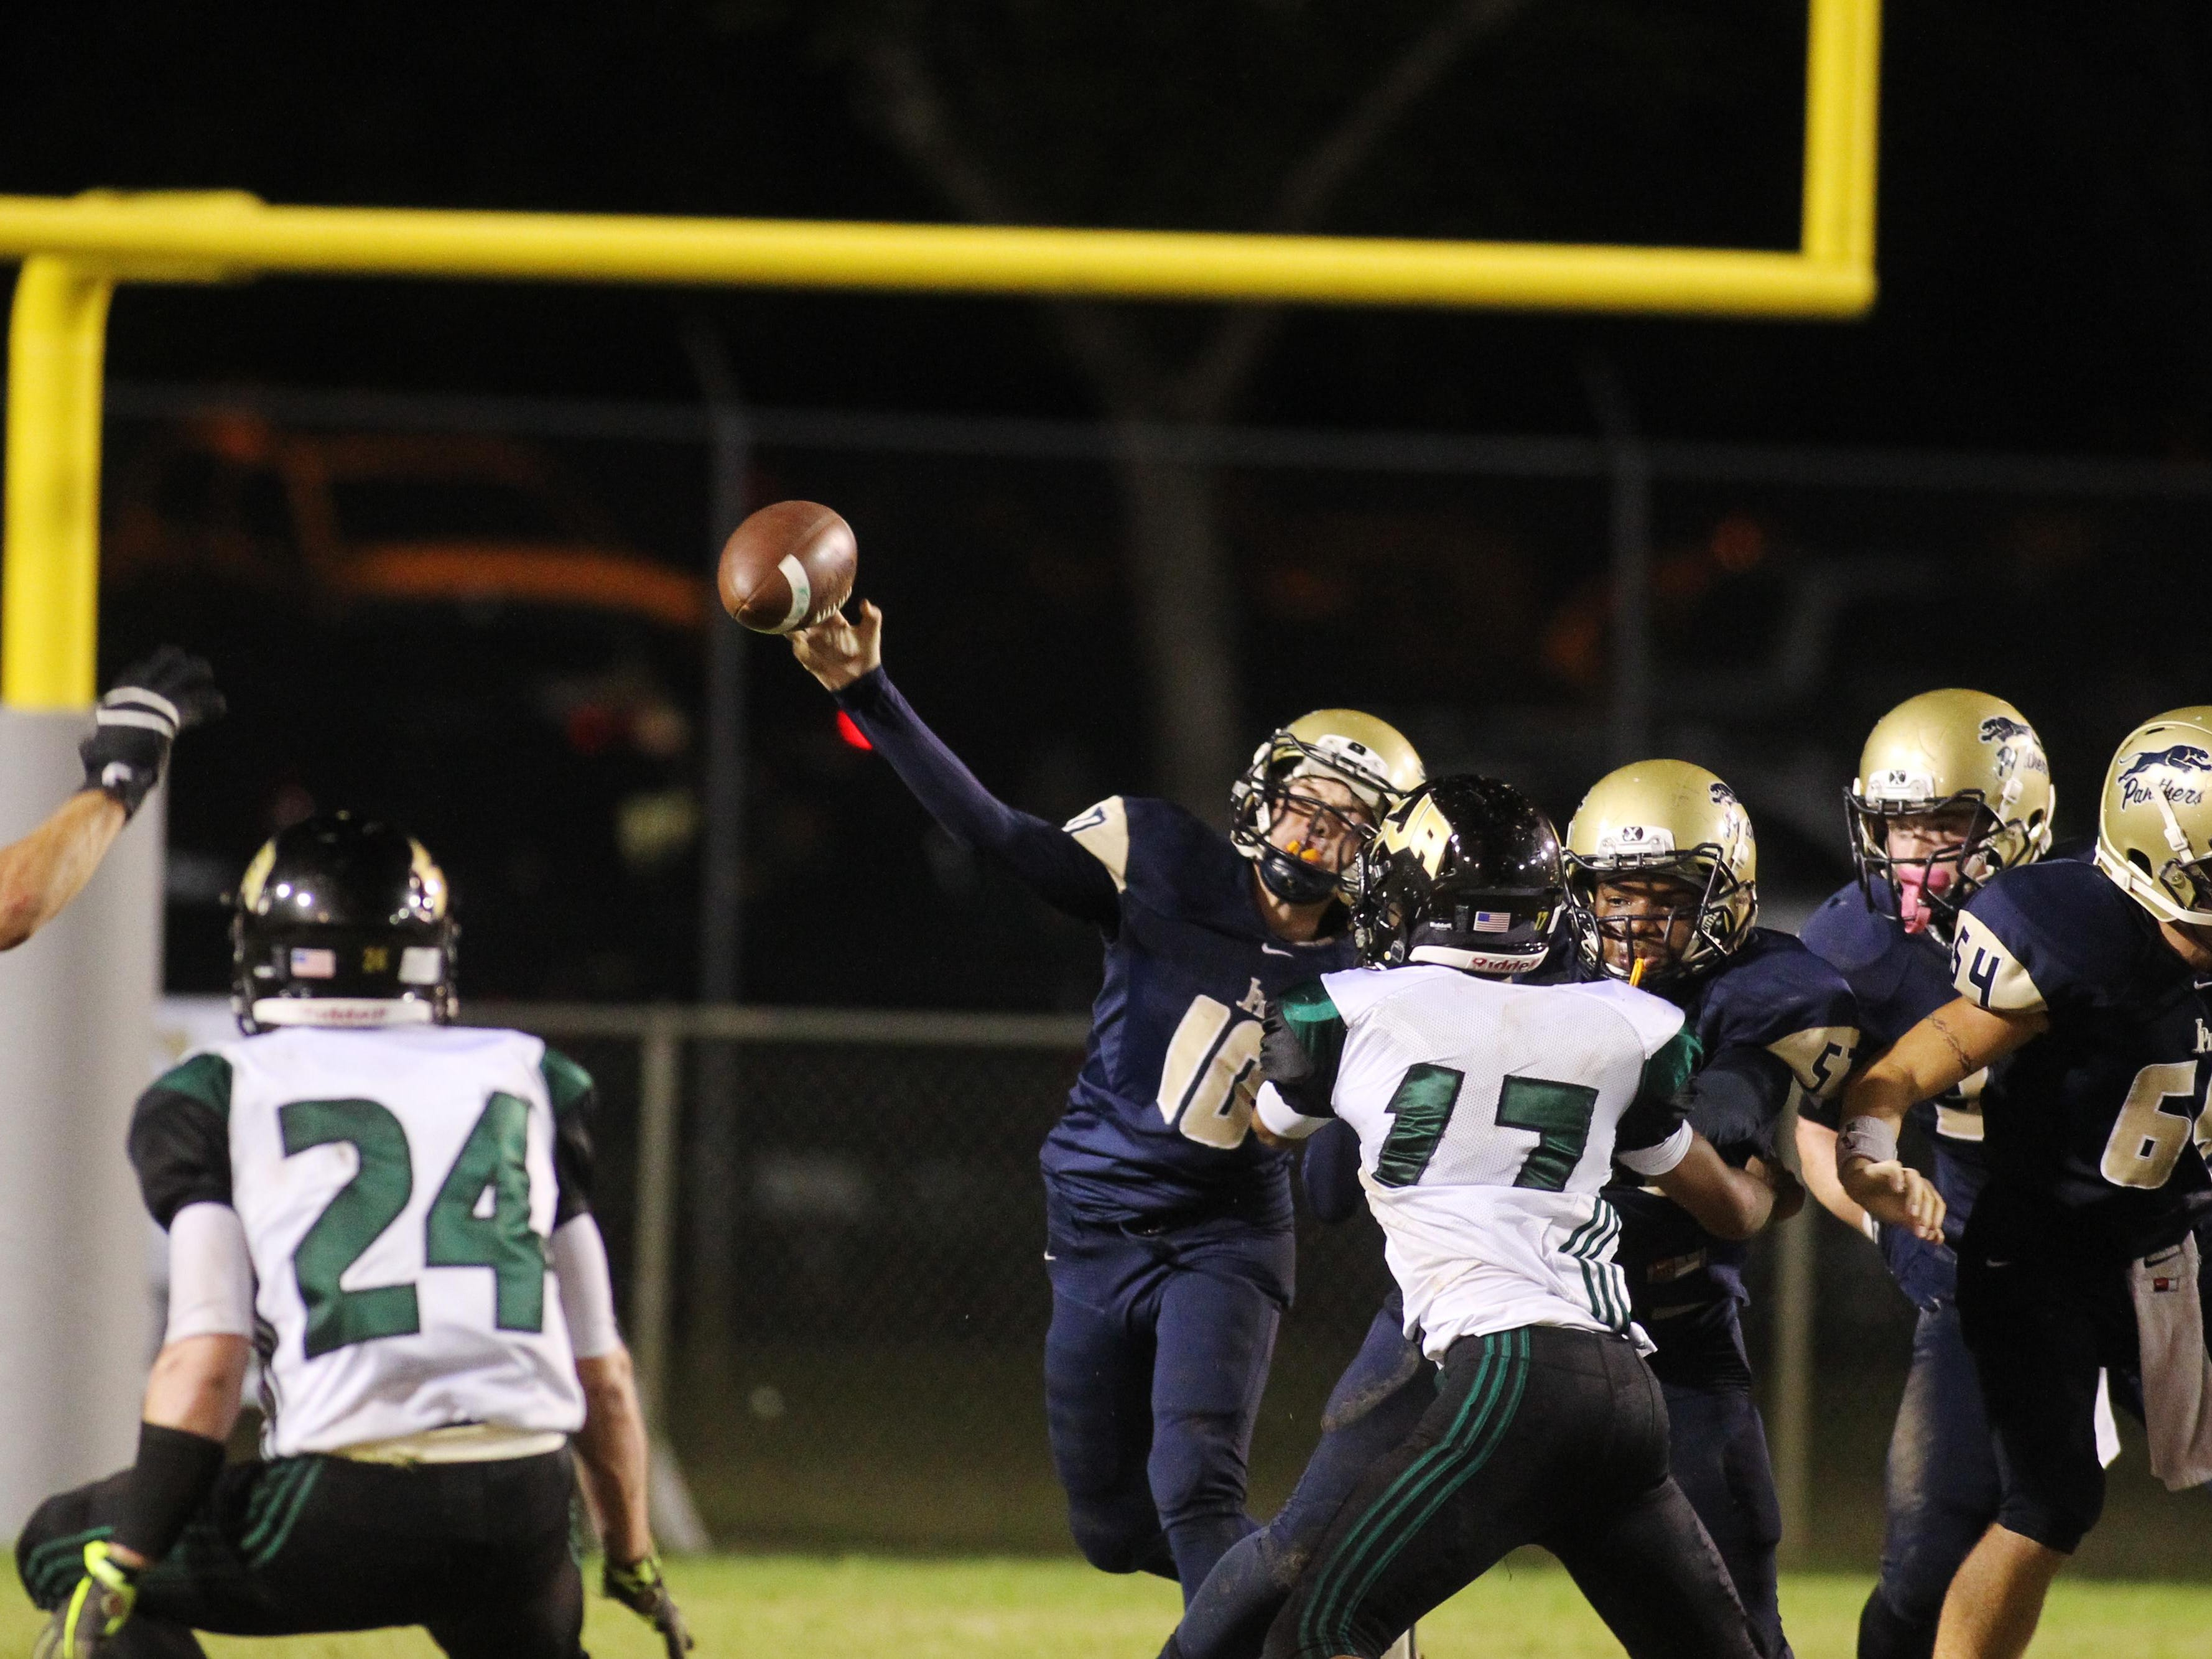 John Paul II quarterback Brian Woodend makes a pass in the championship game of the North Florida Football Conference at Gene Cox Stadium.